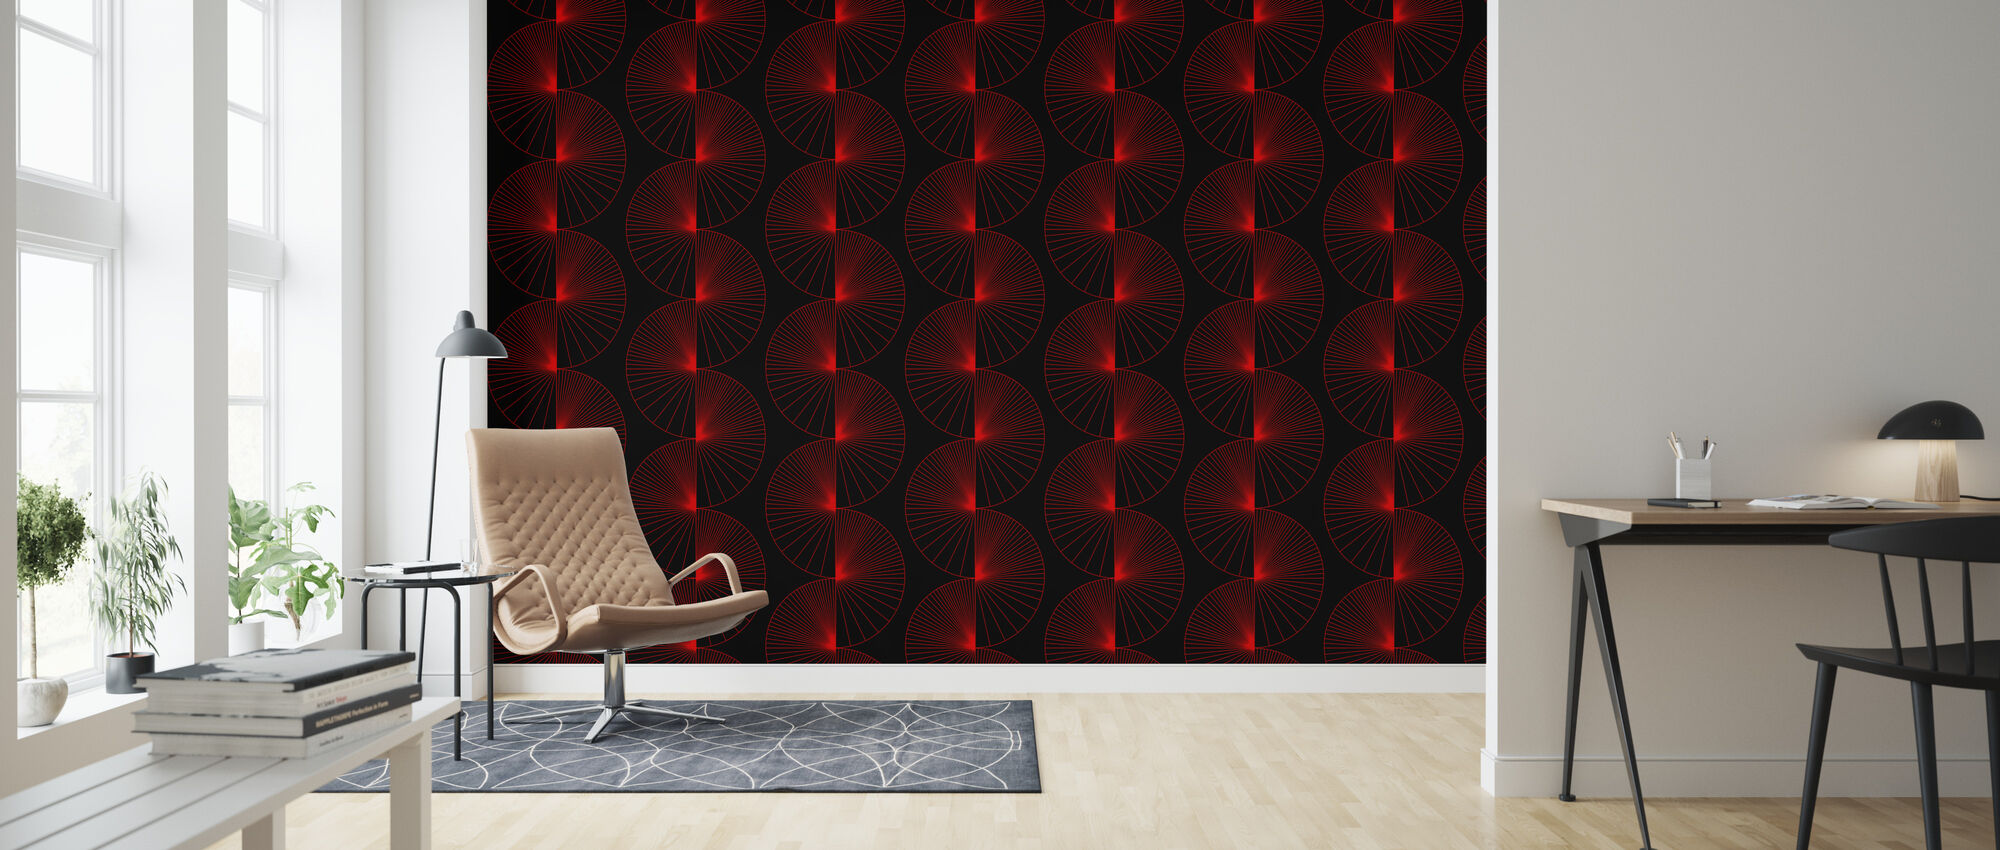 Striped Cikle - Black and Red - Wallpaper - Living Room